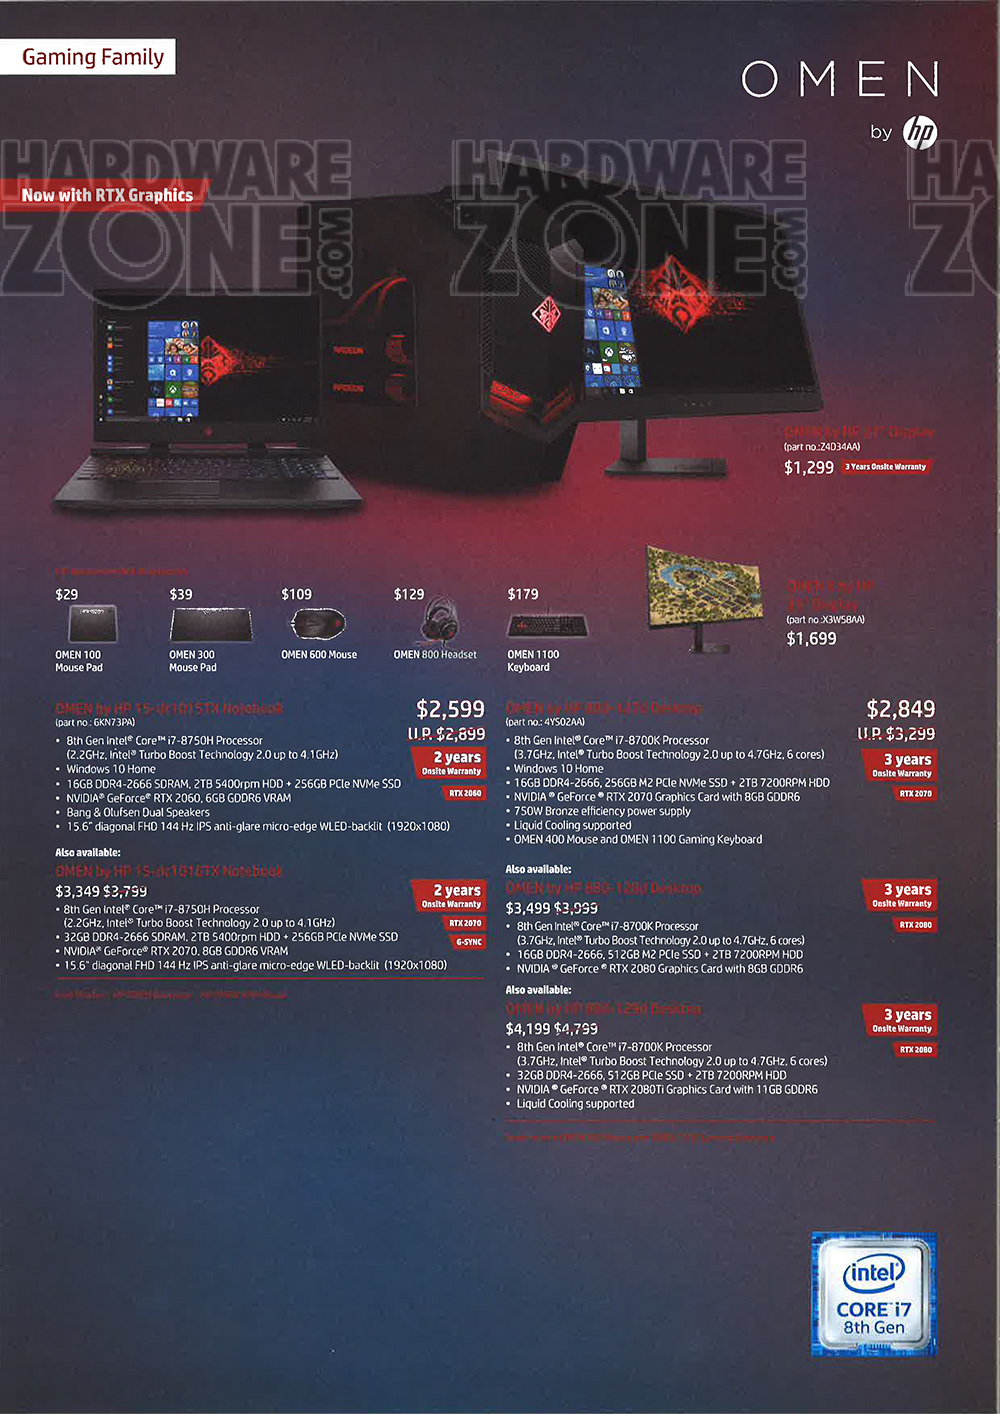 HP Omen Brochures from CEE 2019 on Tech Show Portal